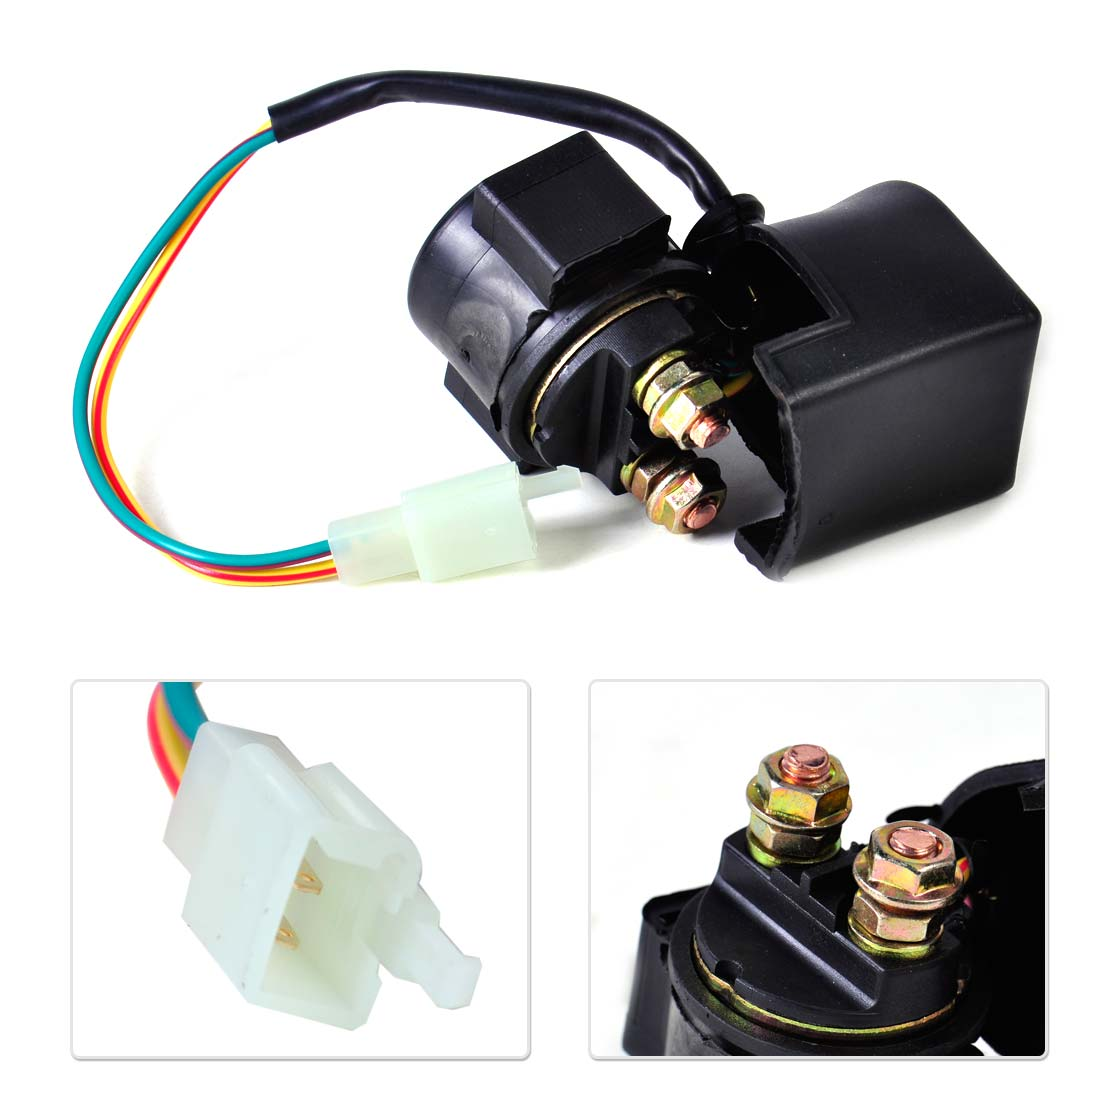 Dwcx new starter solenoid relay for atv scooter 70cc 150 250cc xs360 taotao roketa sunl baja kazuma motorcycle electrical part